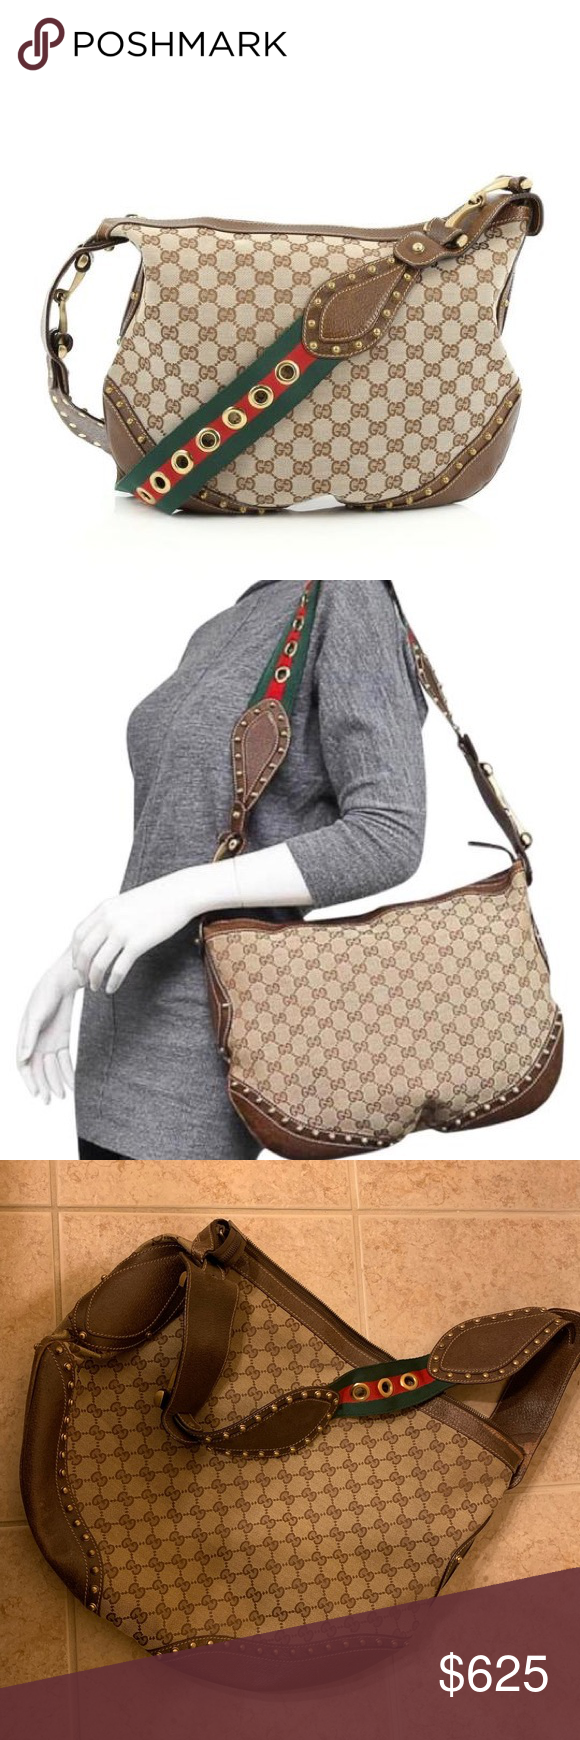 dbb51efd752c Gucci Pelham Monogram Studded Canvas Hobo Bag 100% Authentic Gucci GG  canvas Pelham messenger with